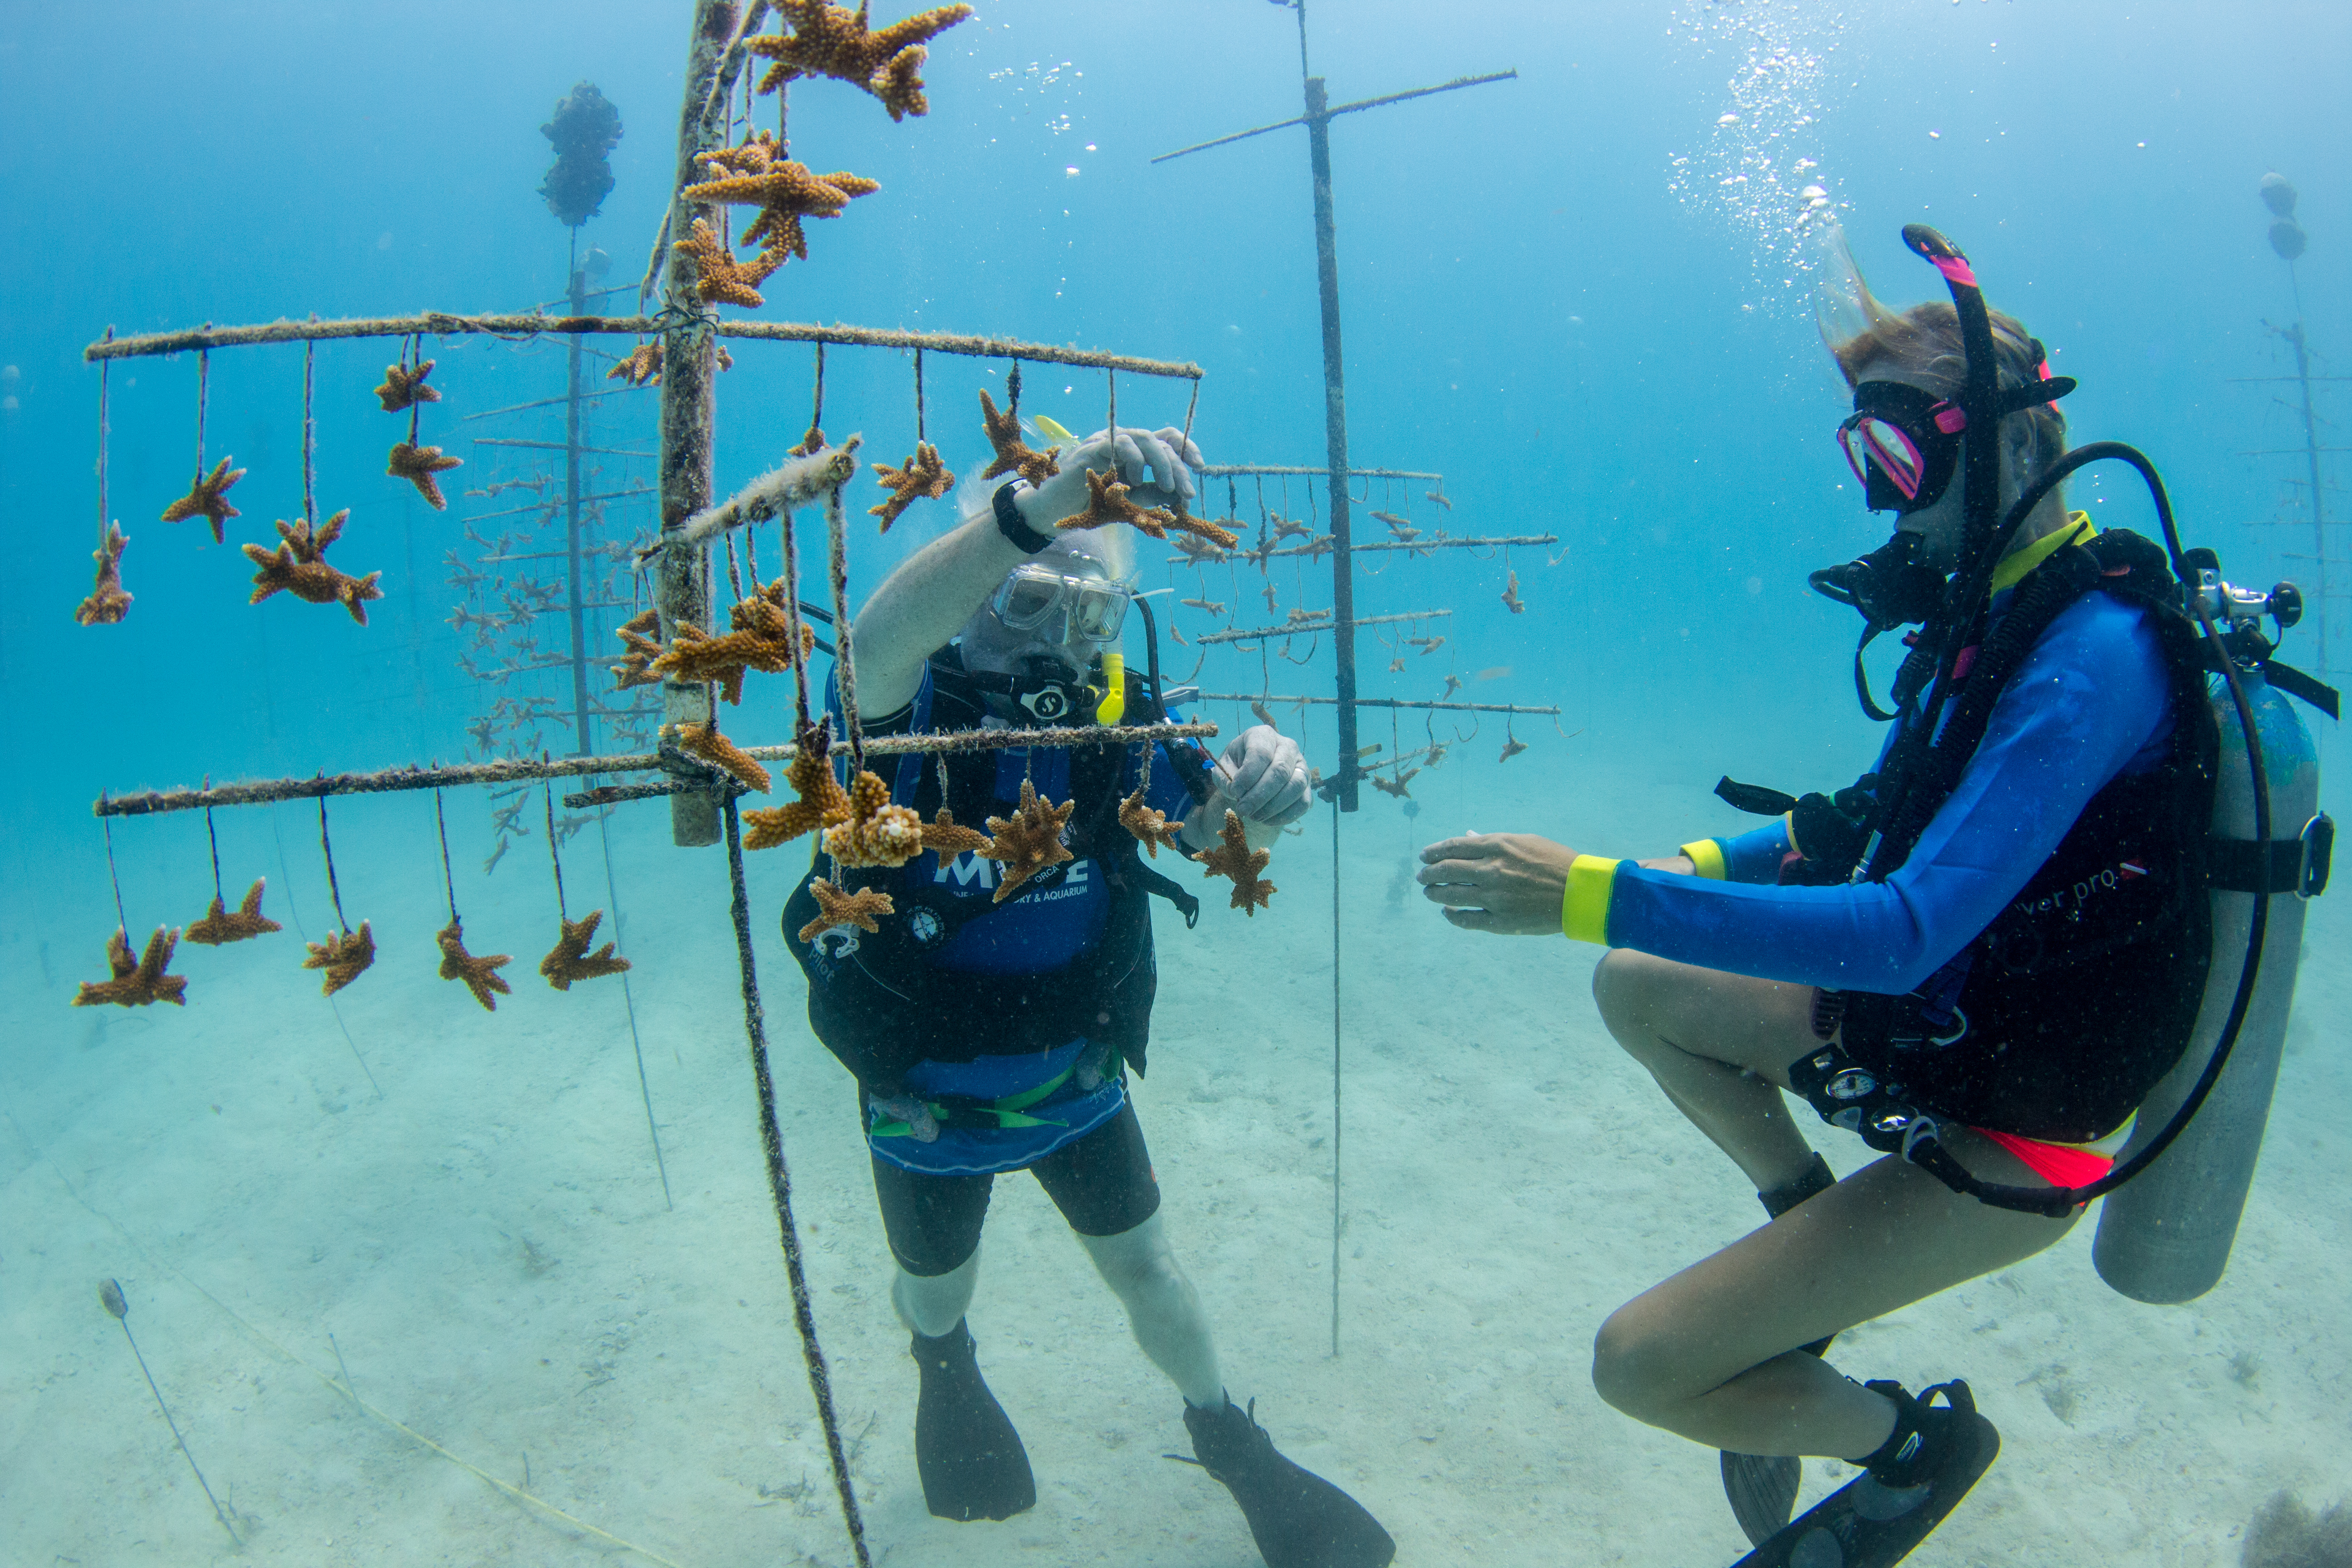 Divers visit a coral tree in Mote's underwater nursery. The tree is a PVC structure that holds coral fragments being grown for restoration.